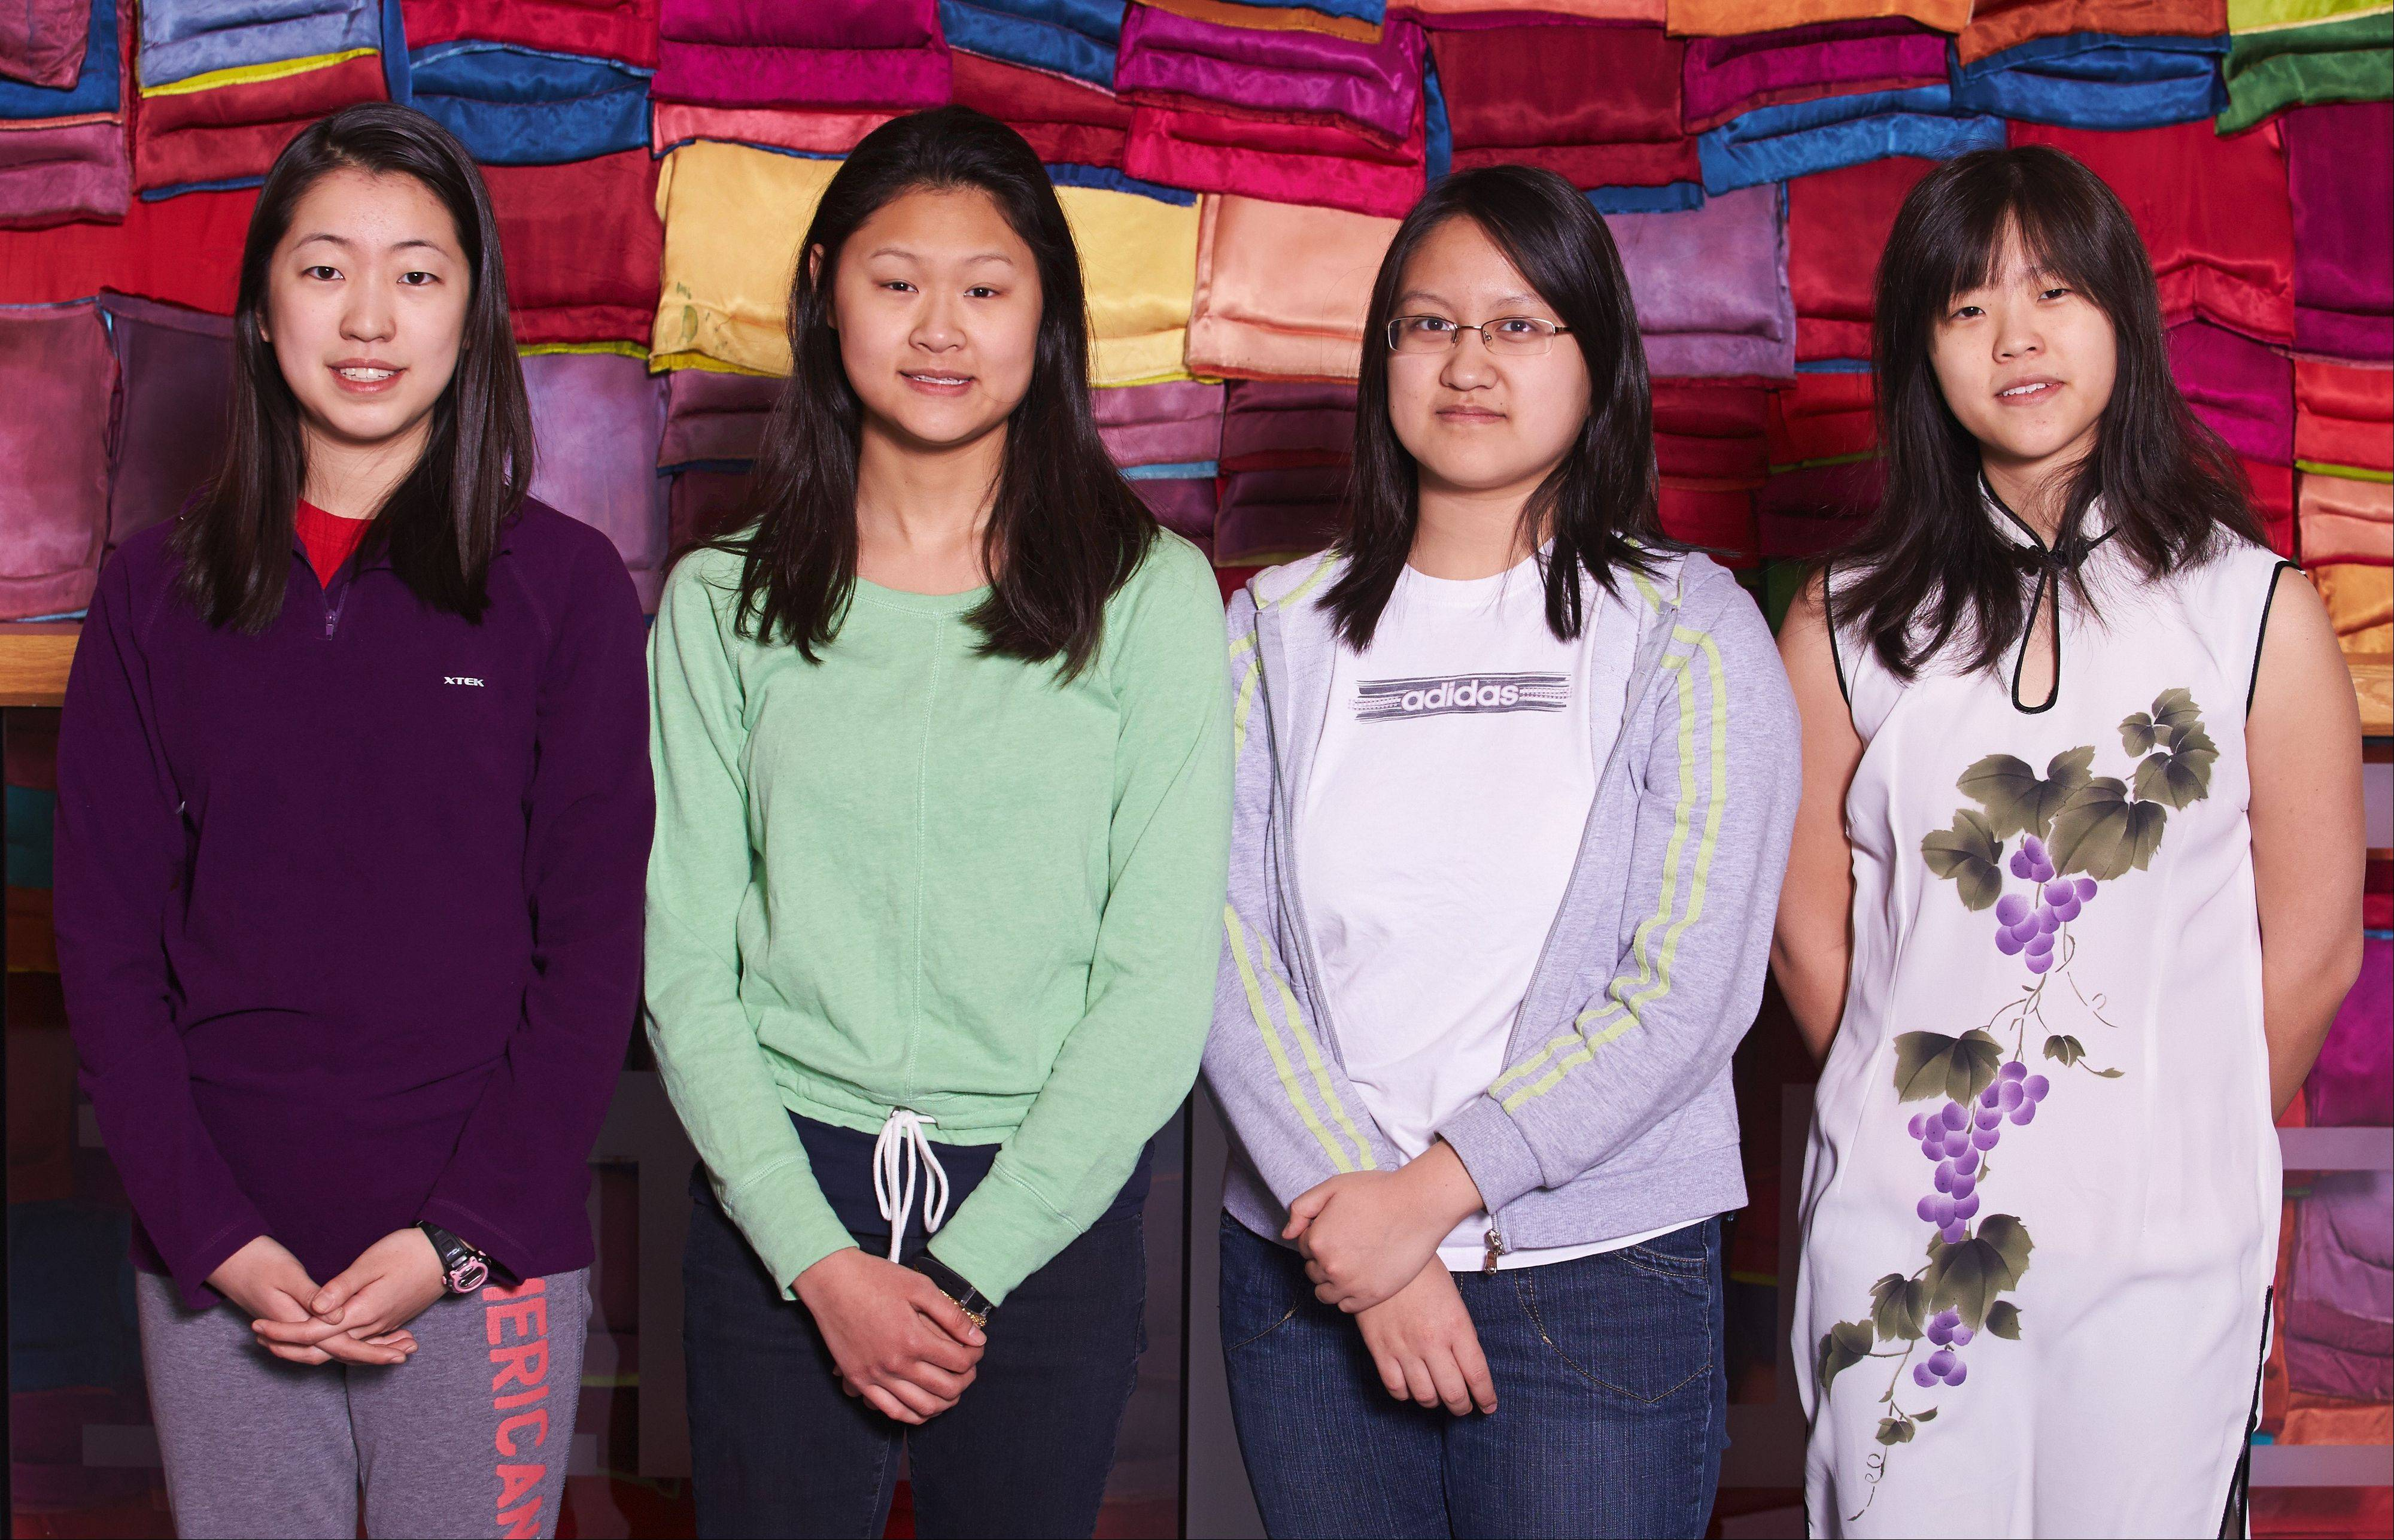 IMSA students Summer Wu of Lake Forest, Zi-Ning Choo of Naperville, Mary Do of Carpentersville and Grace Li of Schaumburg received the highest ranking in the 15th annual international High School Mathematical Contest in Modeling.